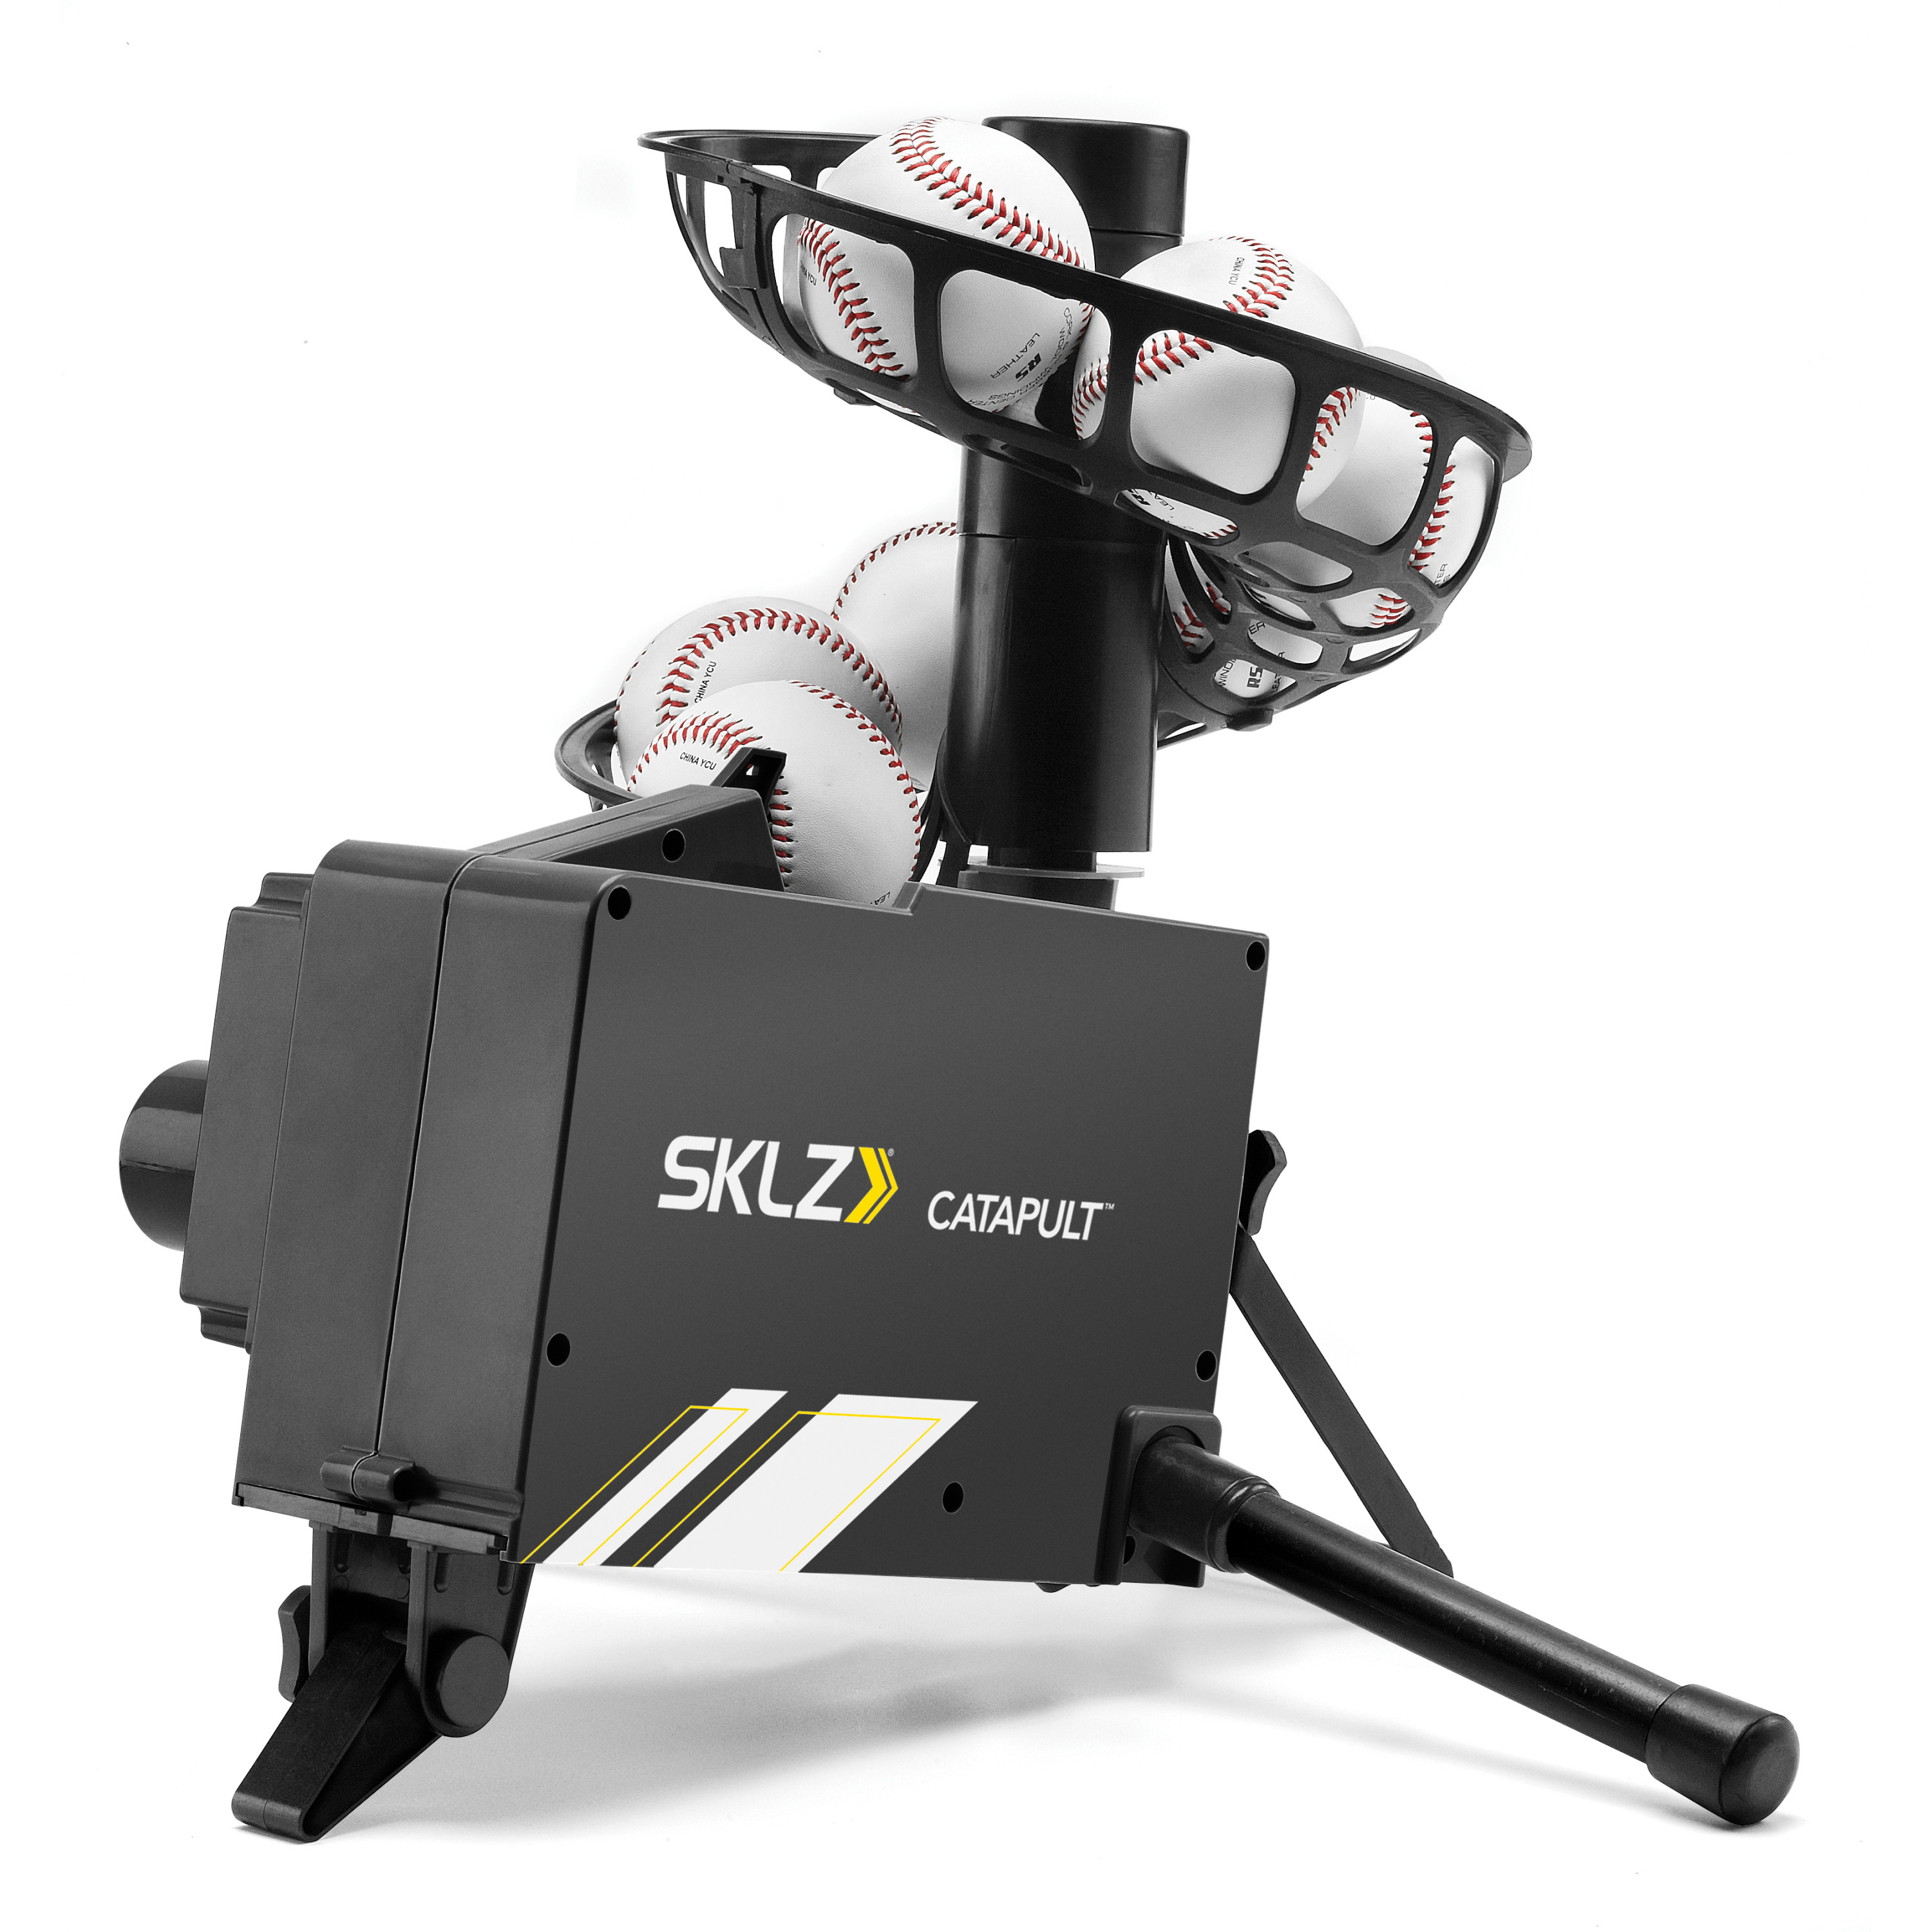 SKLZ Catapult Soft Toss Baseball Pitching & Fielding Trainer